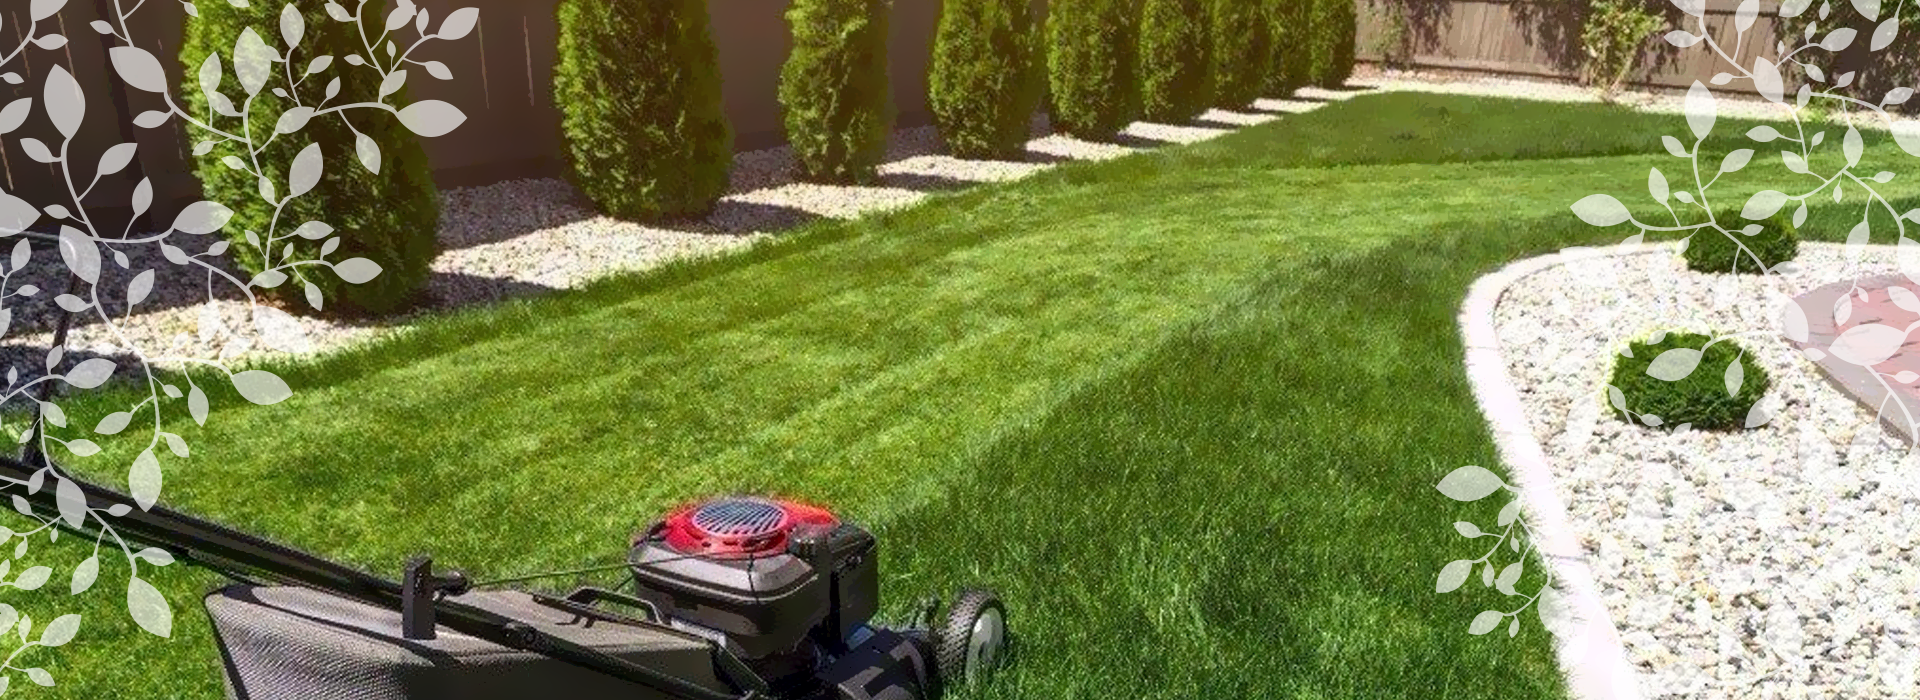 Advantages of Garden Maintenance Services You Didn't Know